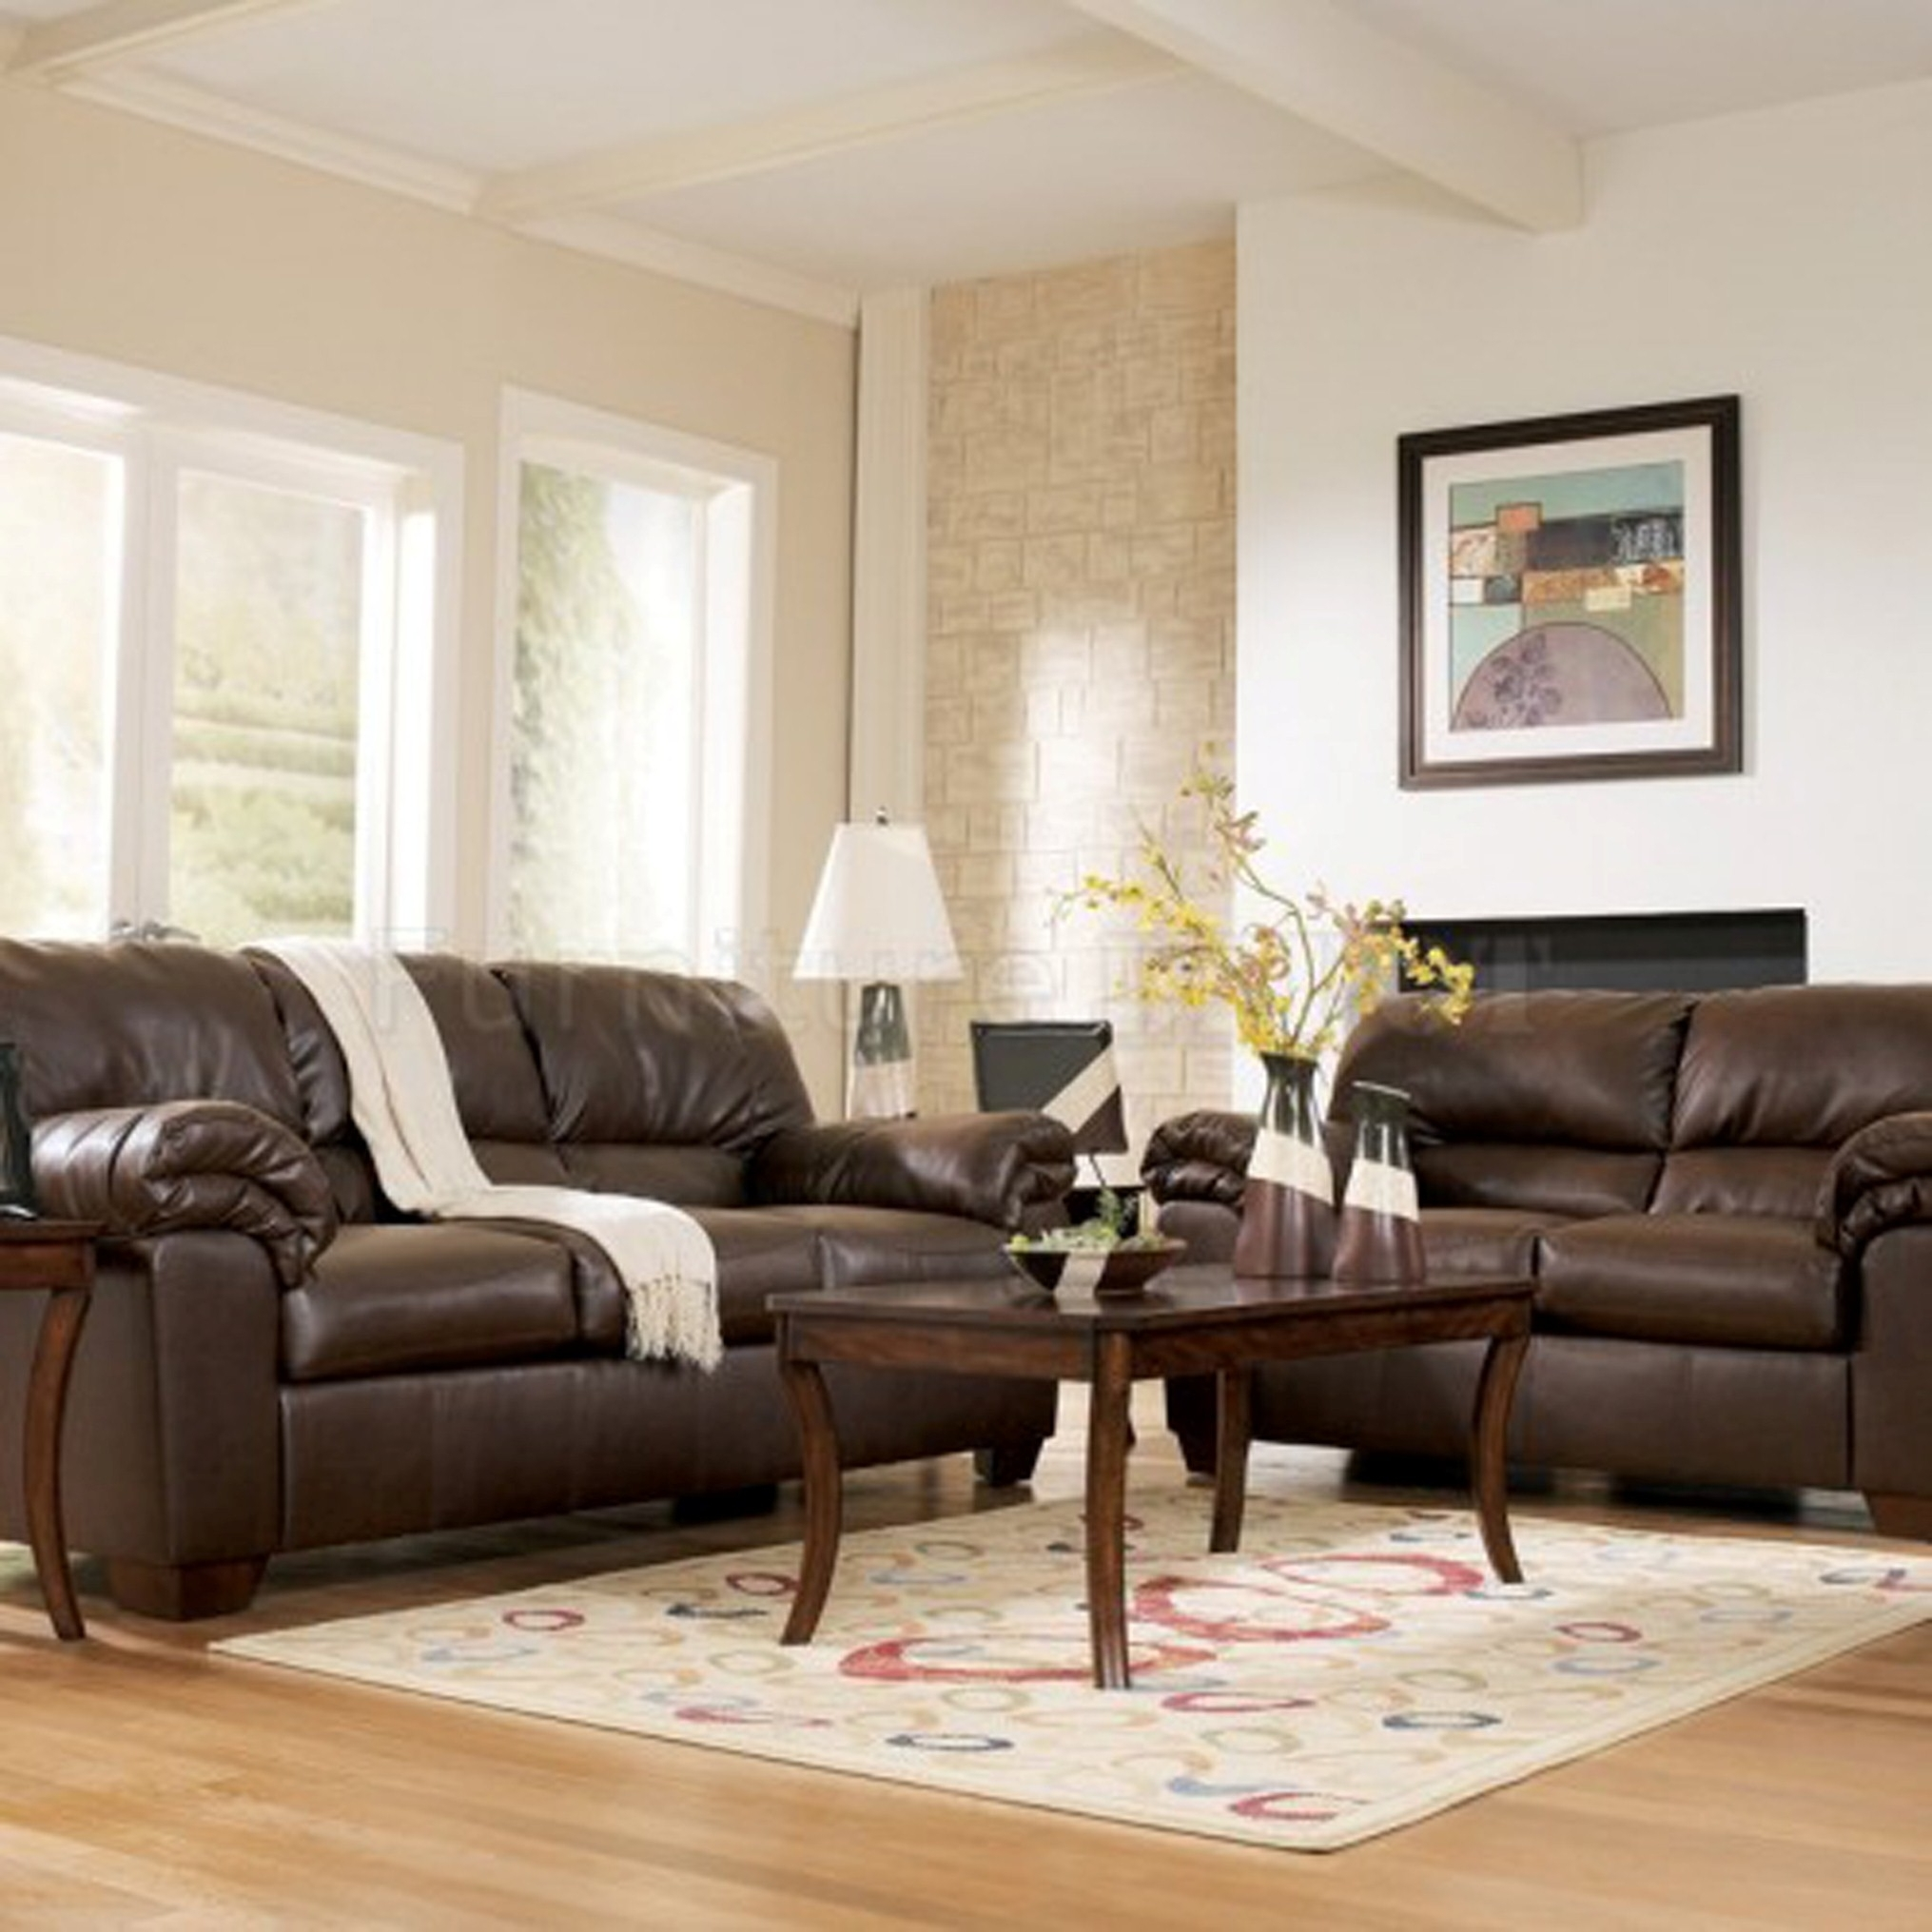 living room ideas brown leather couch living room ideas brown leather sofa 24942